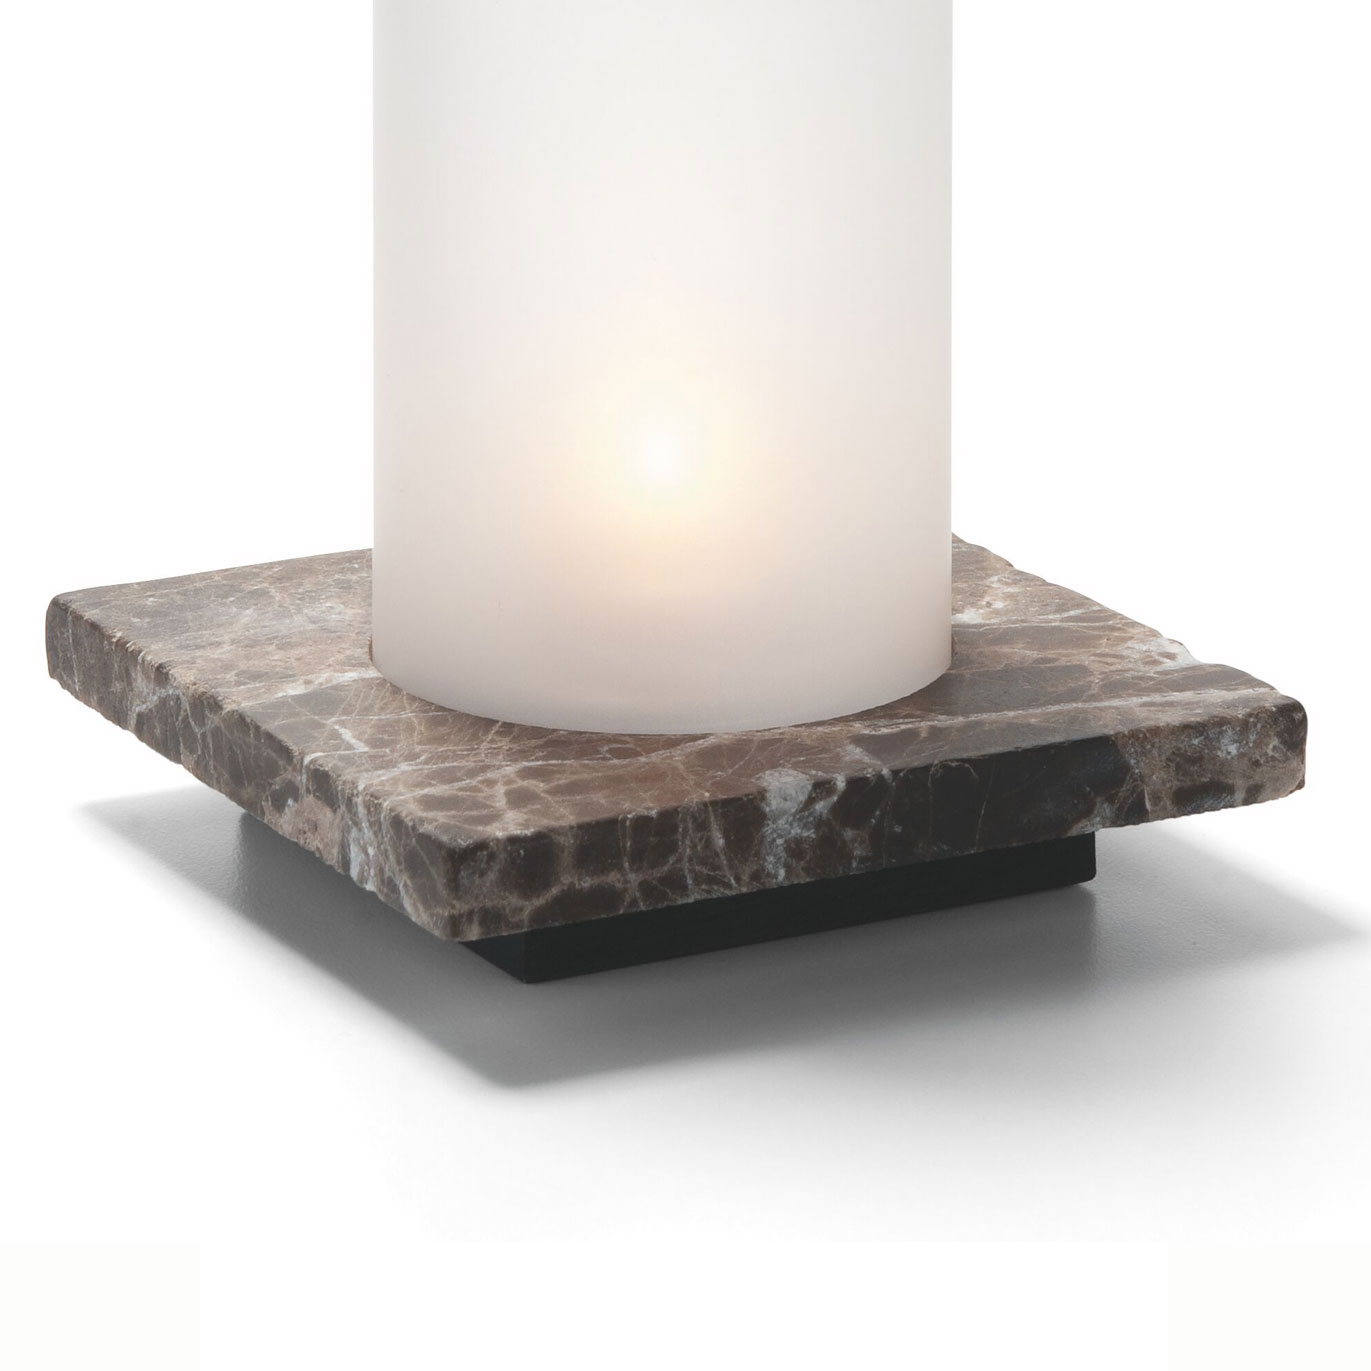 Hollowick ZEN-DEM Square Lamp Base, Single, Stone, Dark Emperador, 4x4.88-in